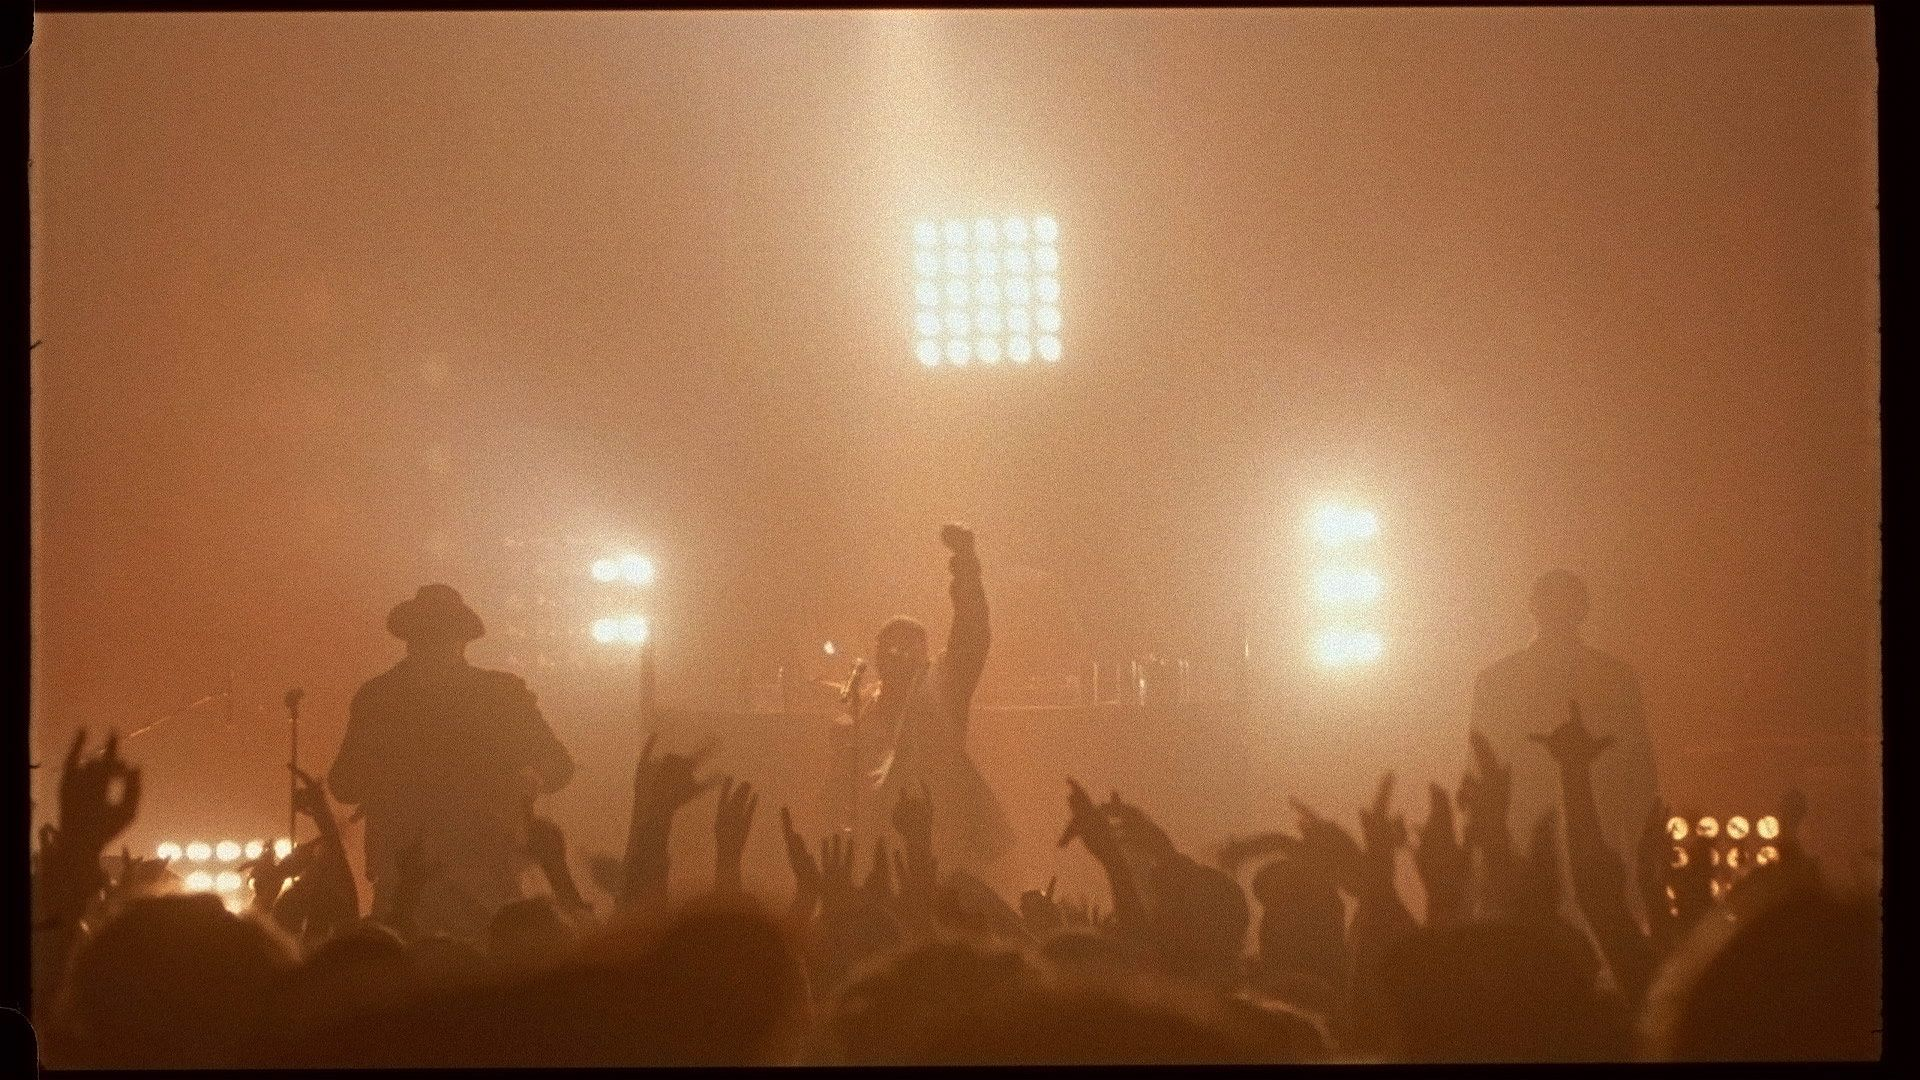 singer Brown on stage with his fist raised up in the air in front of crowd bathed in soft orange light for L'Osstidfilm documentary filmed by Vincent Ruel-Cote from Les Gamins about L'Osstidtour